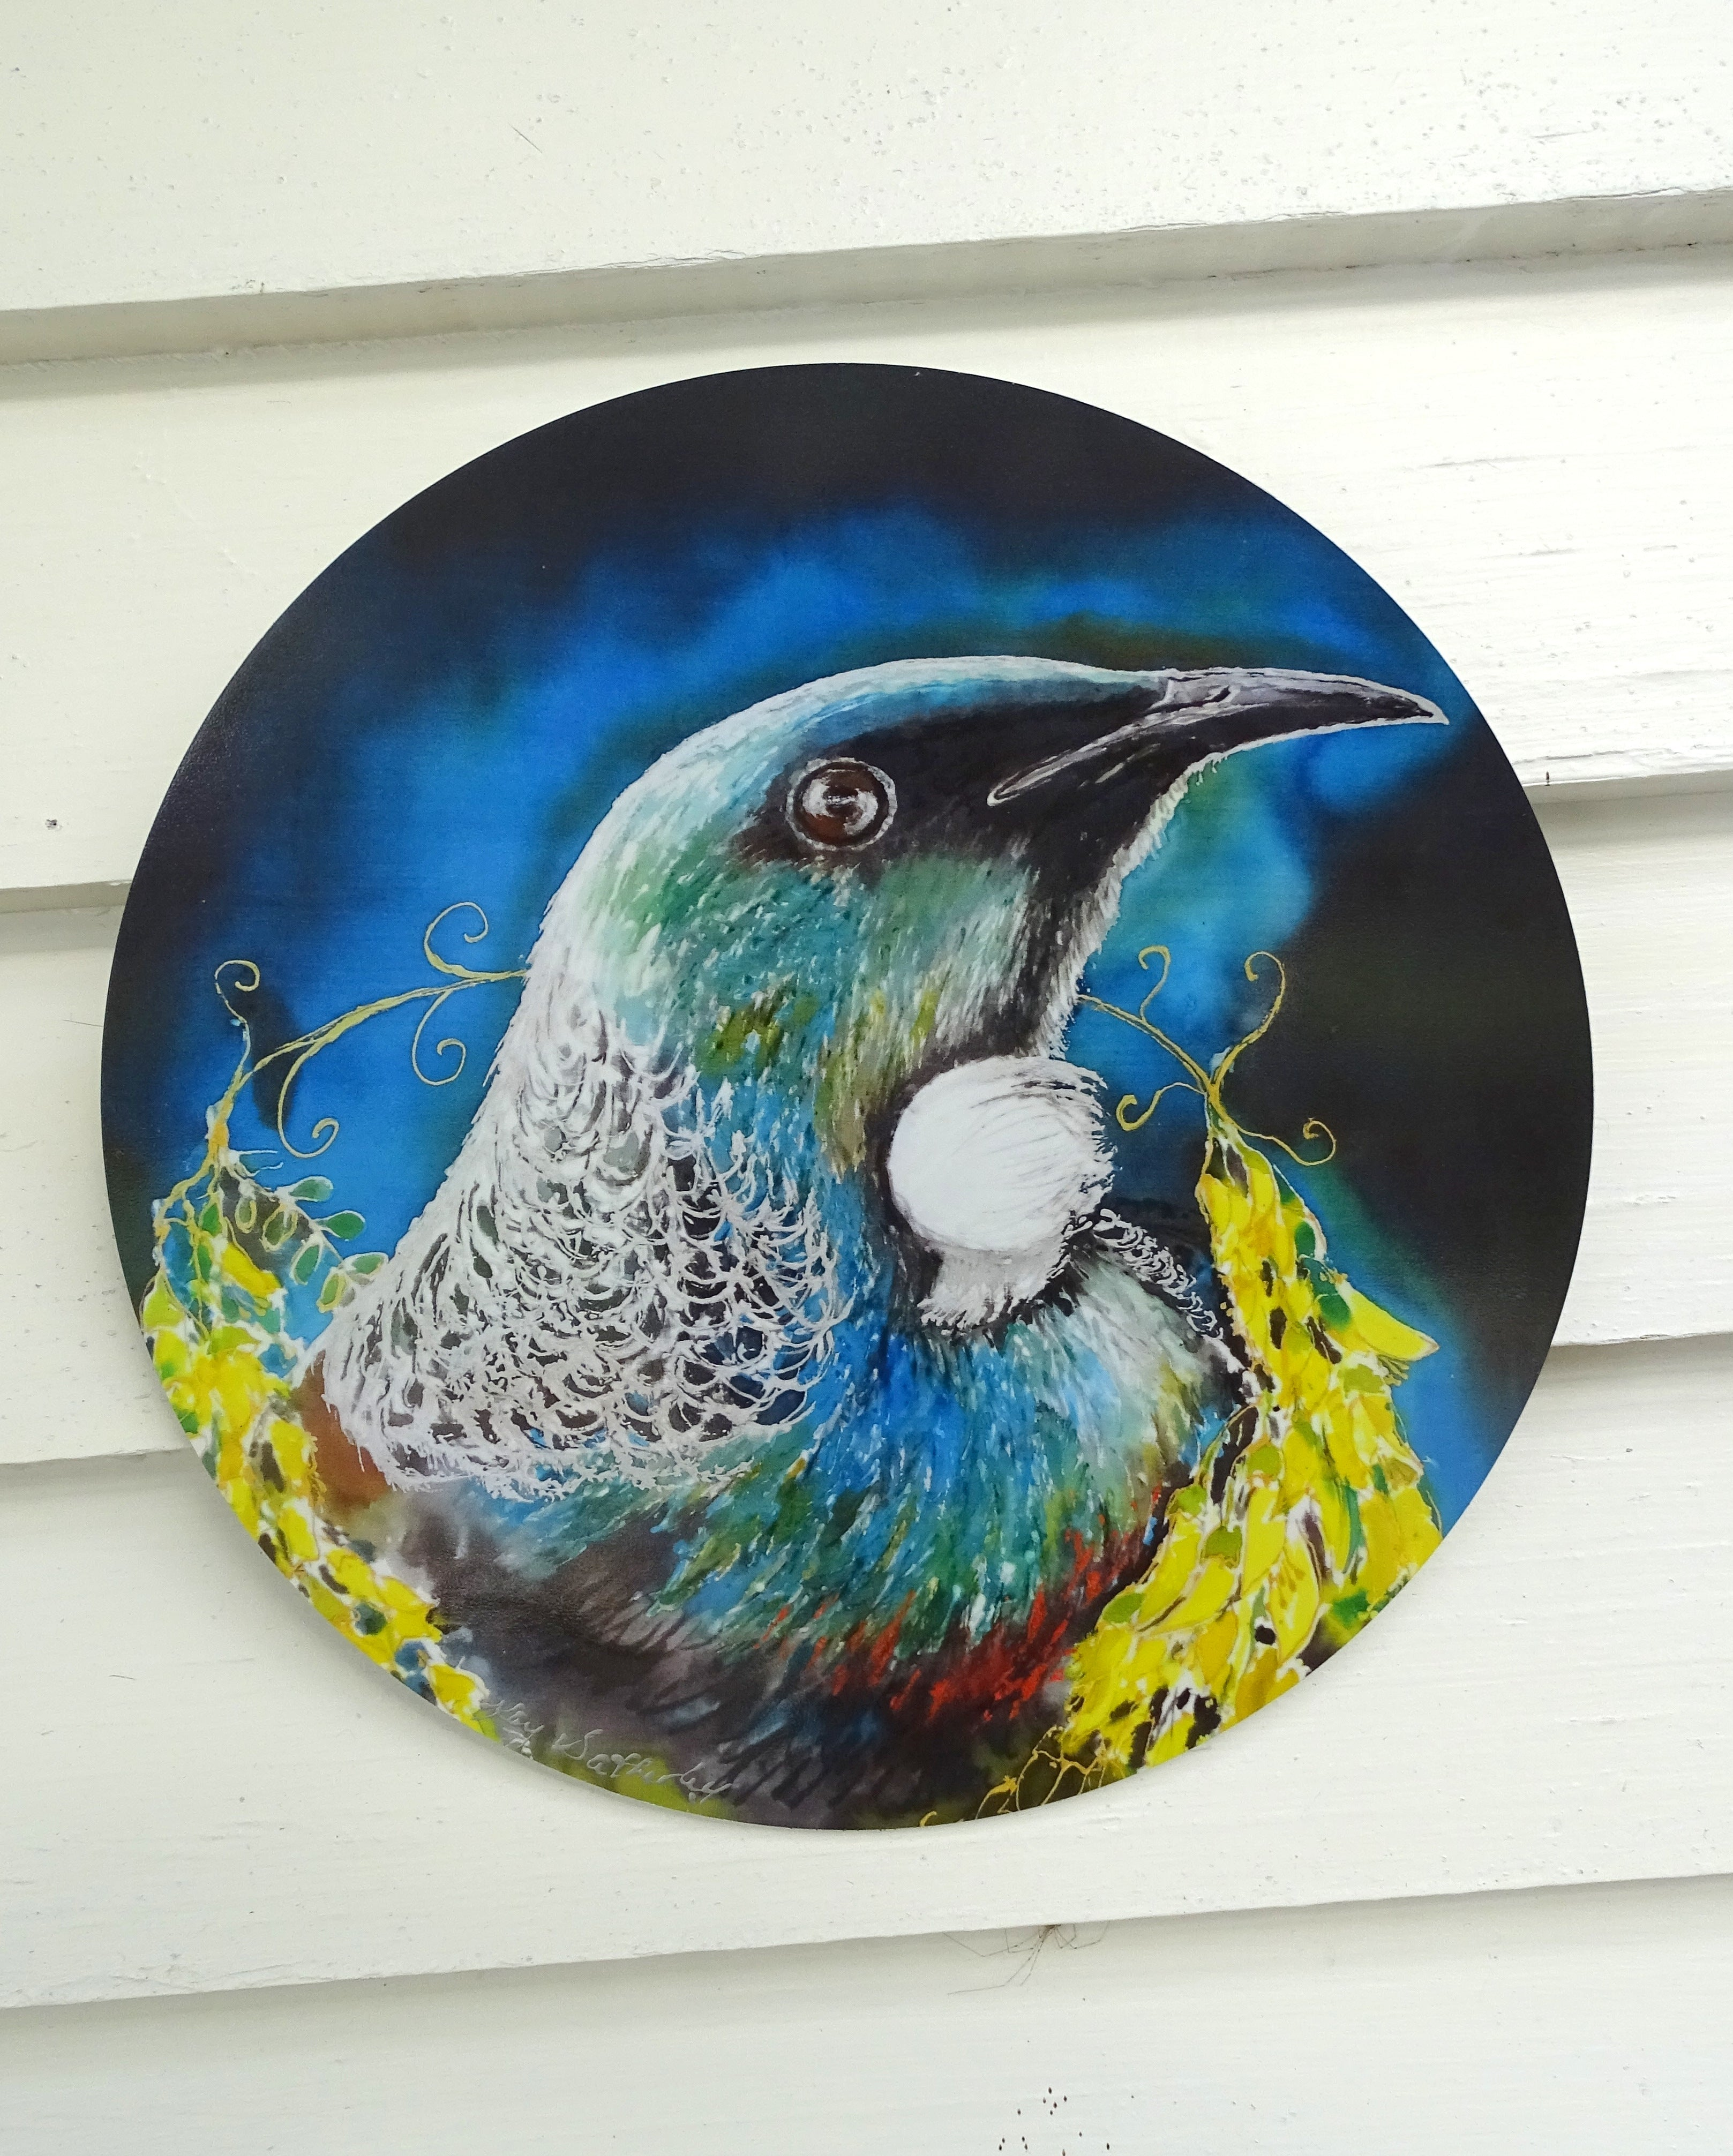 Tui Portrait, with Kowhai Necklace - Outdoor Garden Art Panel - Satherley Silks NZ